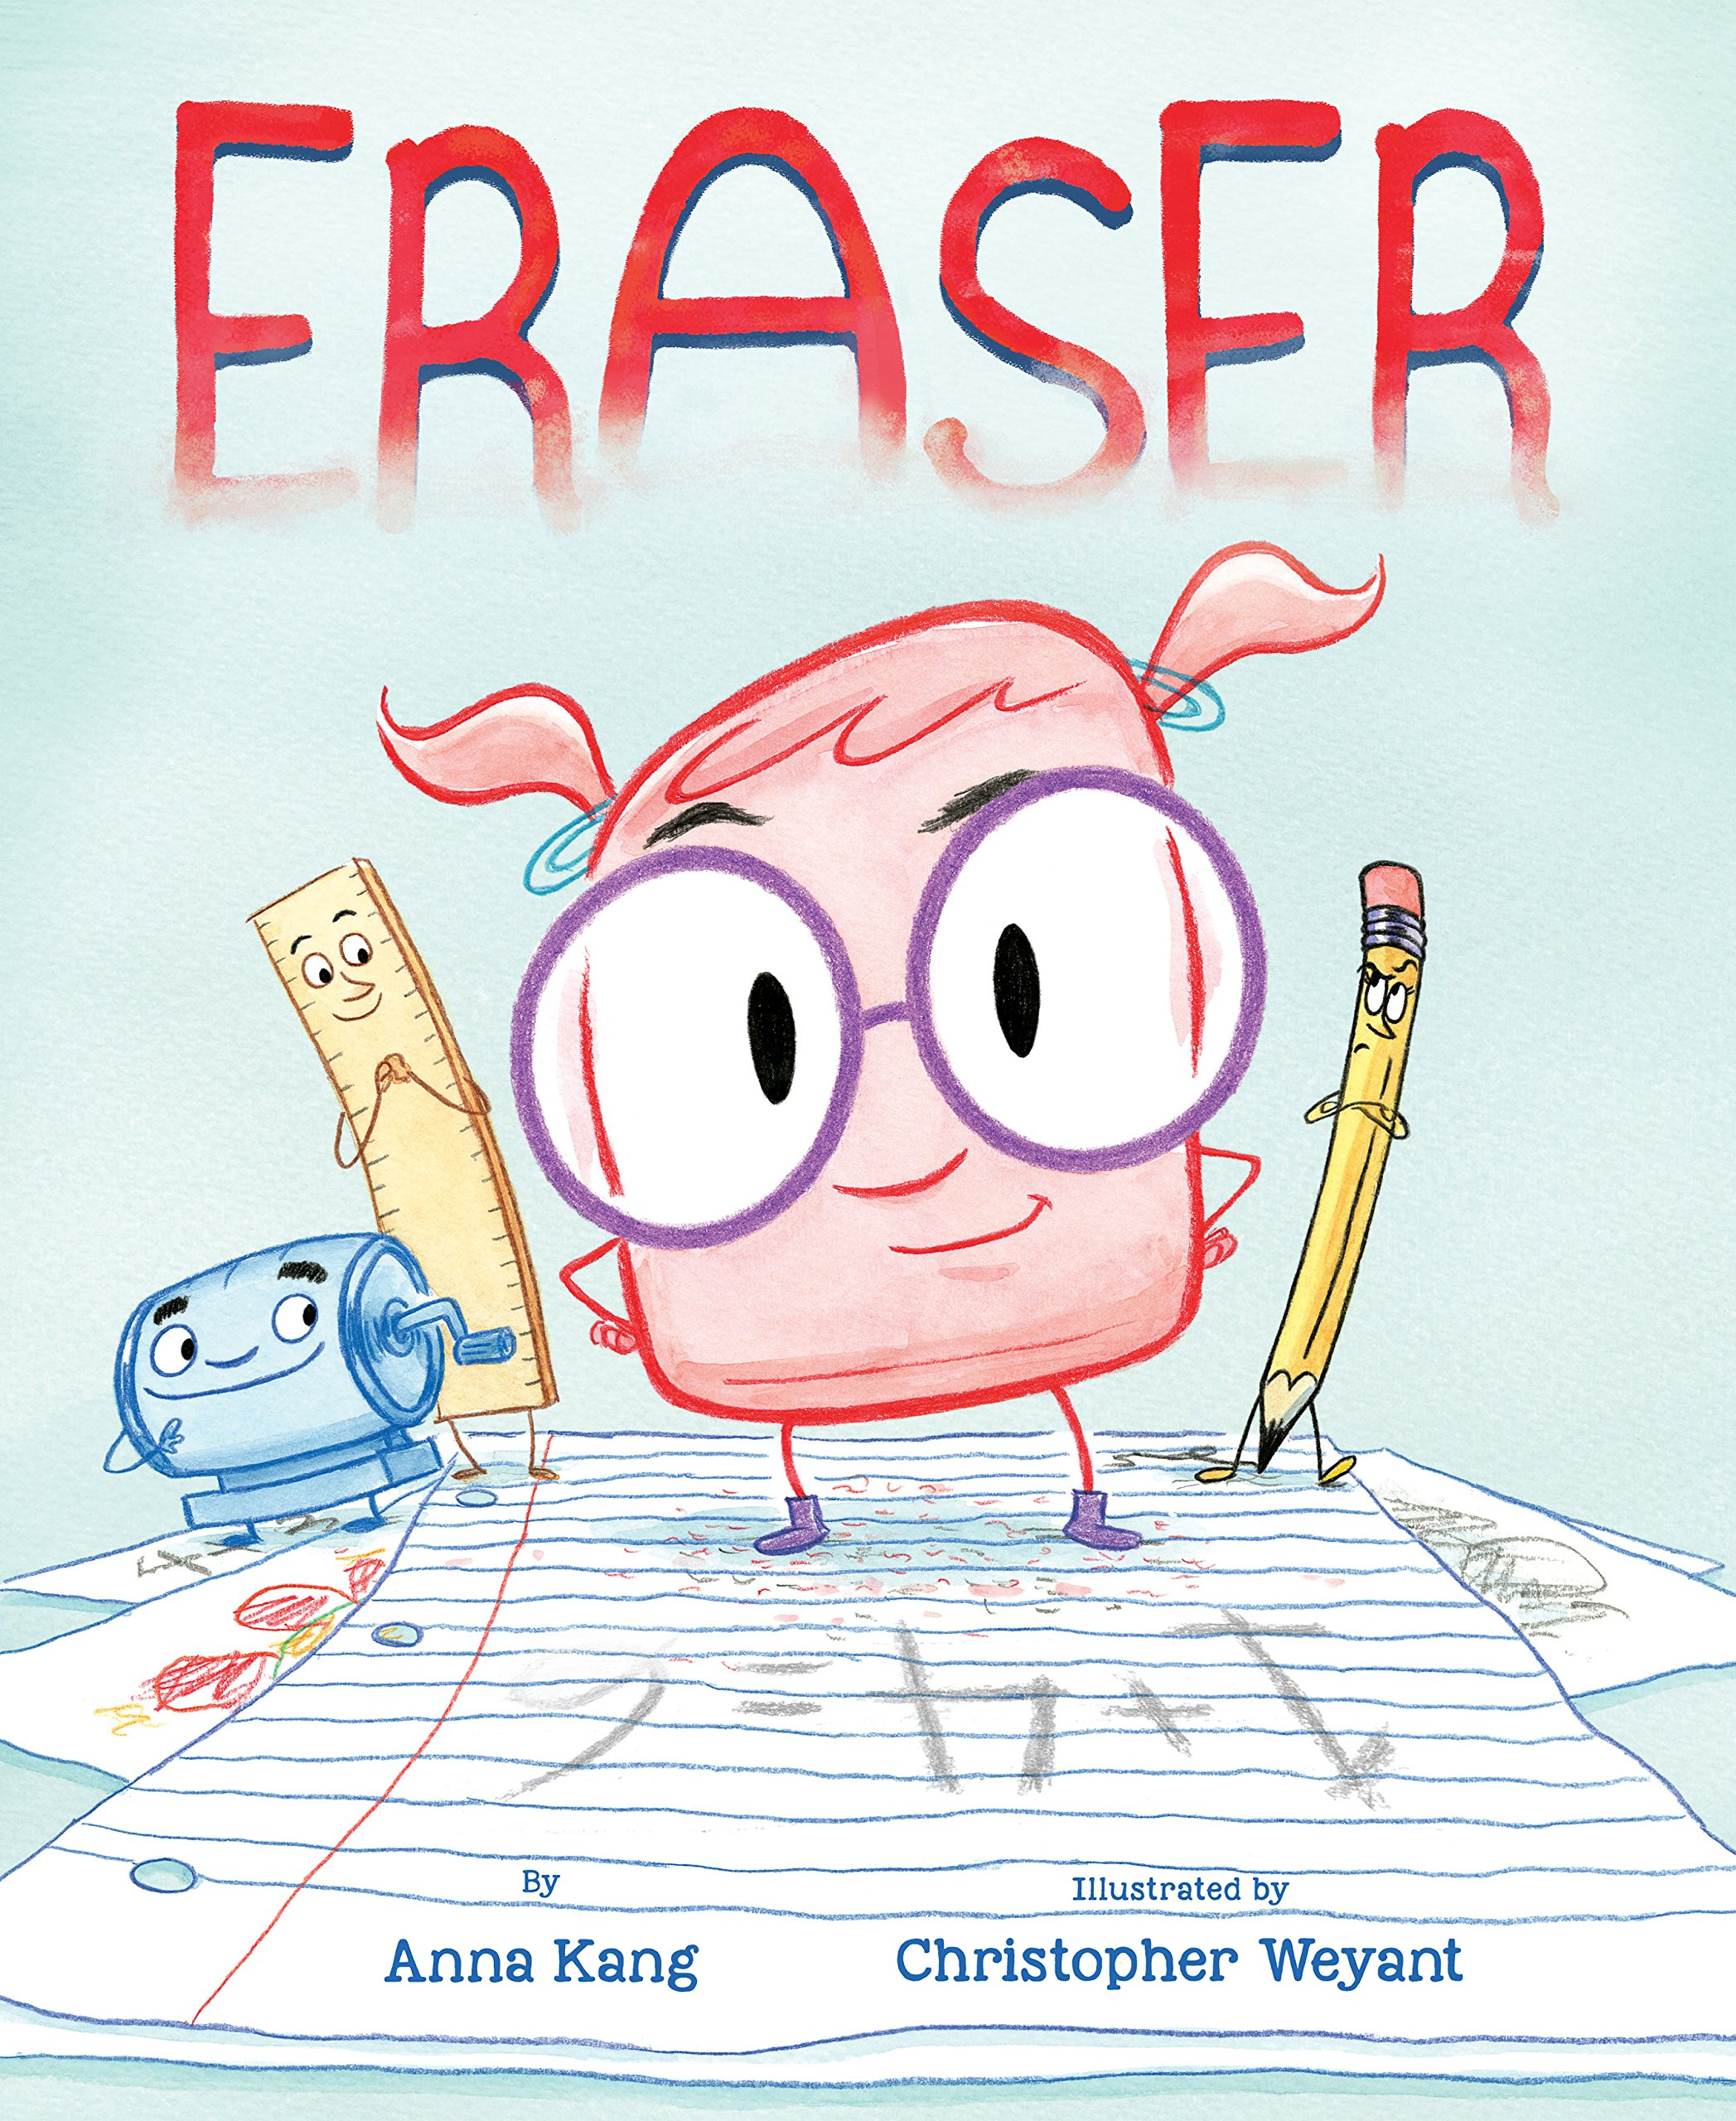 What is purchase eraser